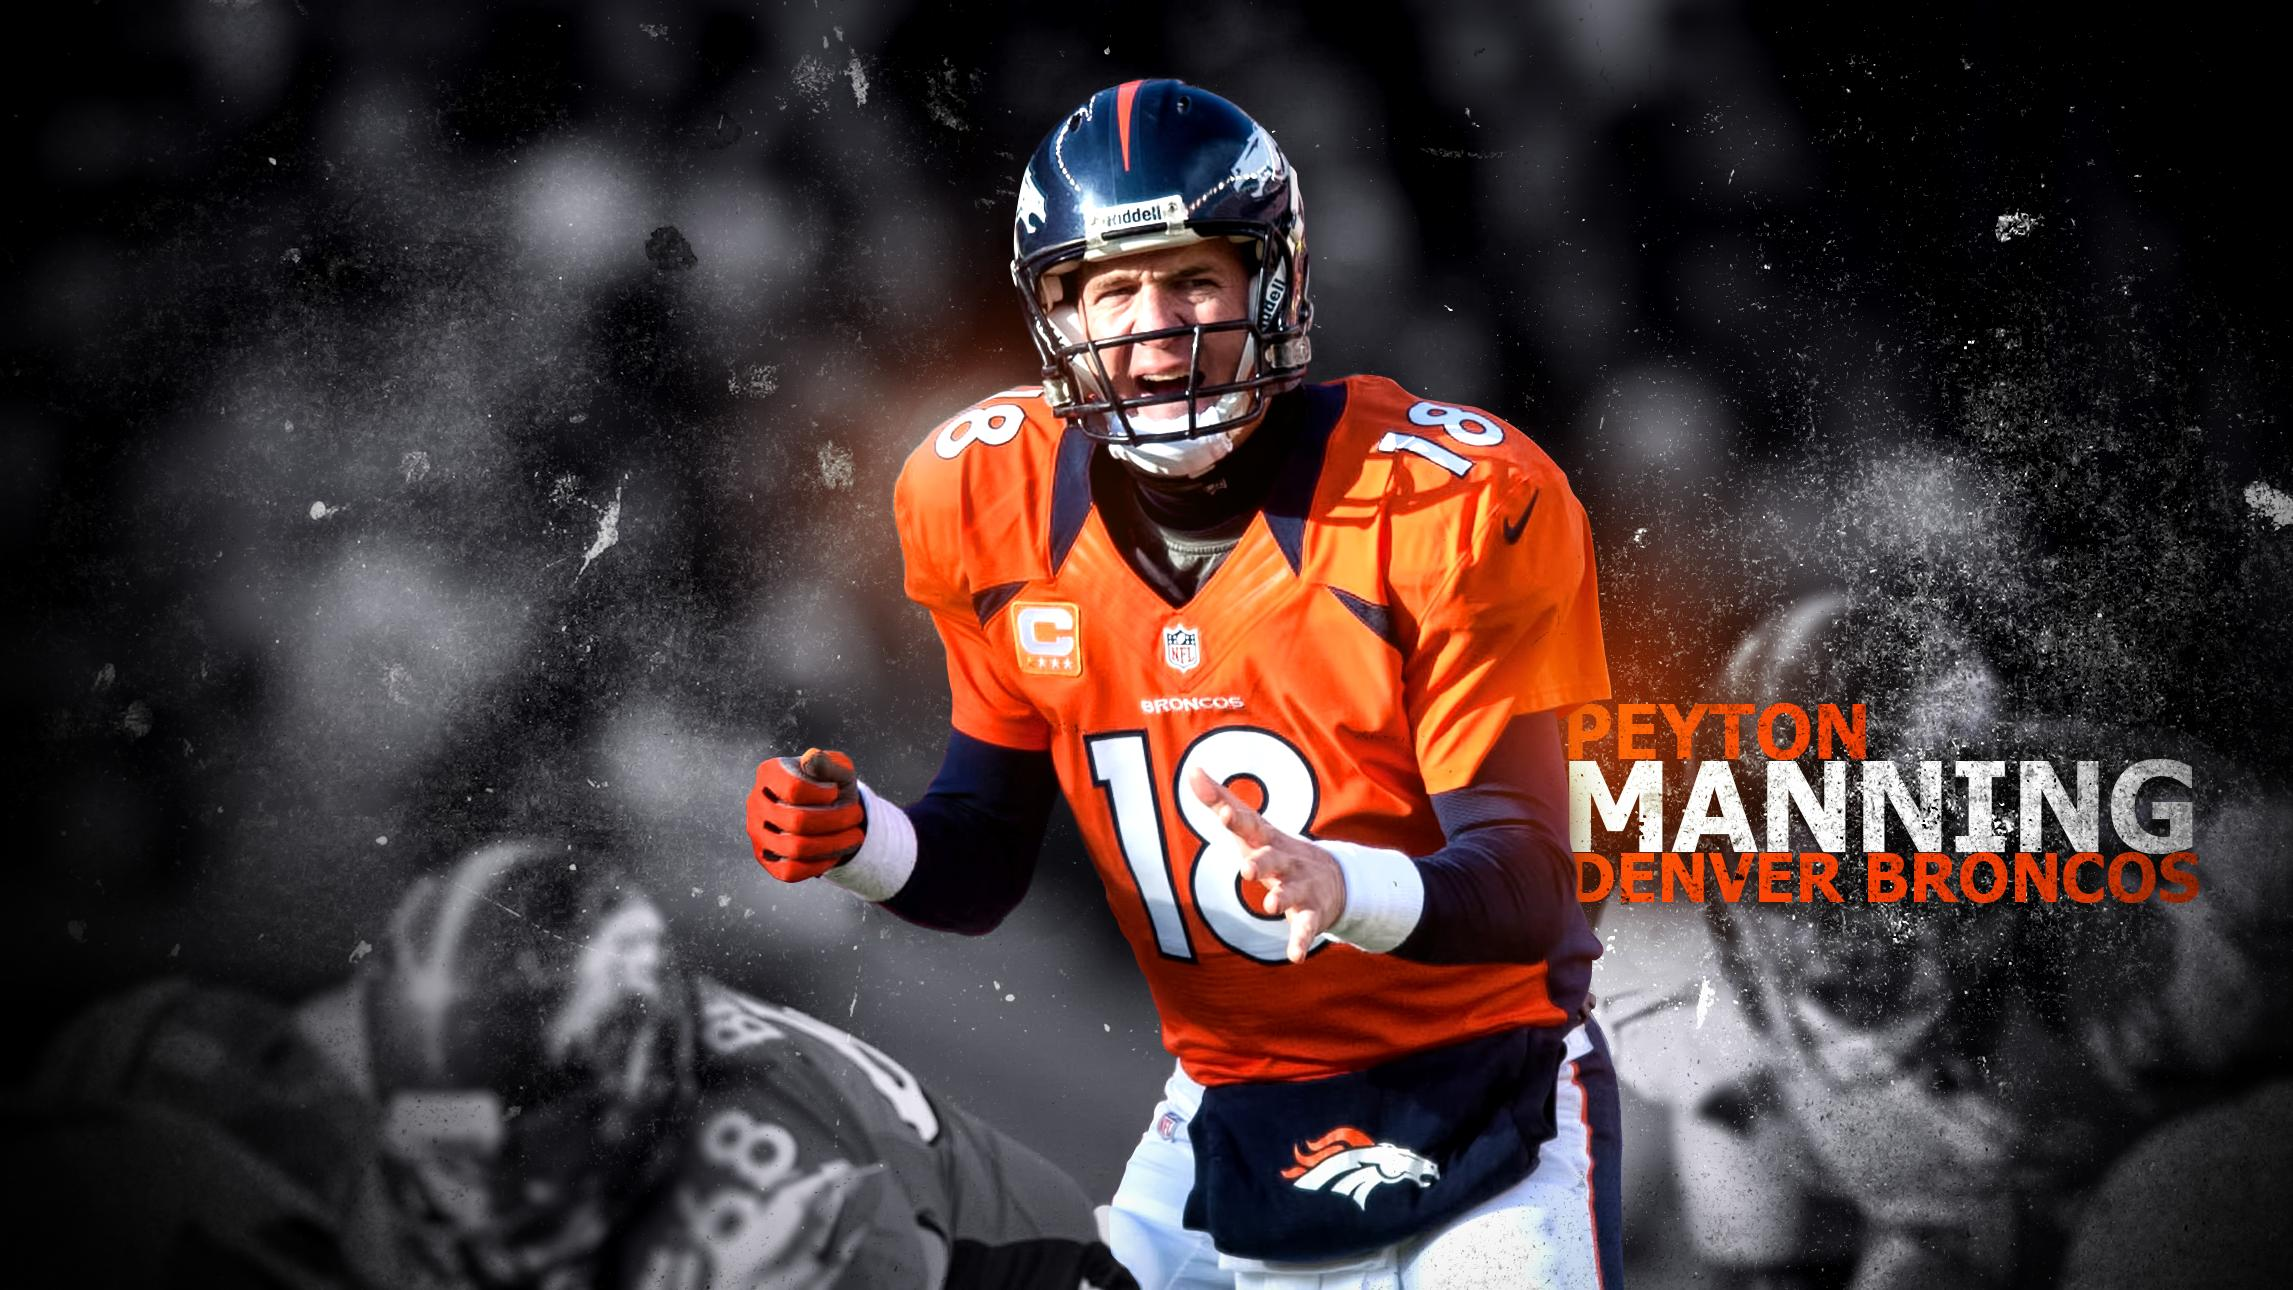 Broncos wallpaper 14534 2293x1290 px hdwallsource broncos wallpaper 14534 voltagebd Images